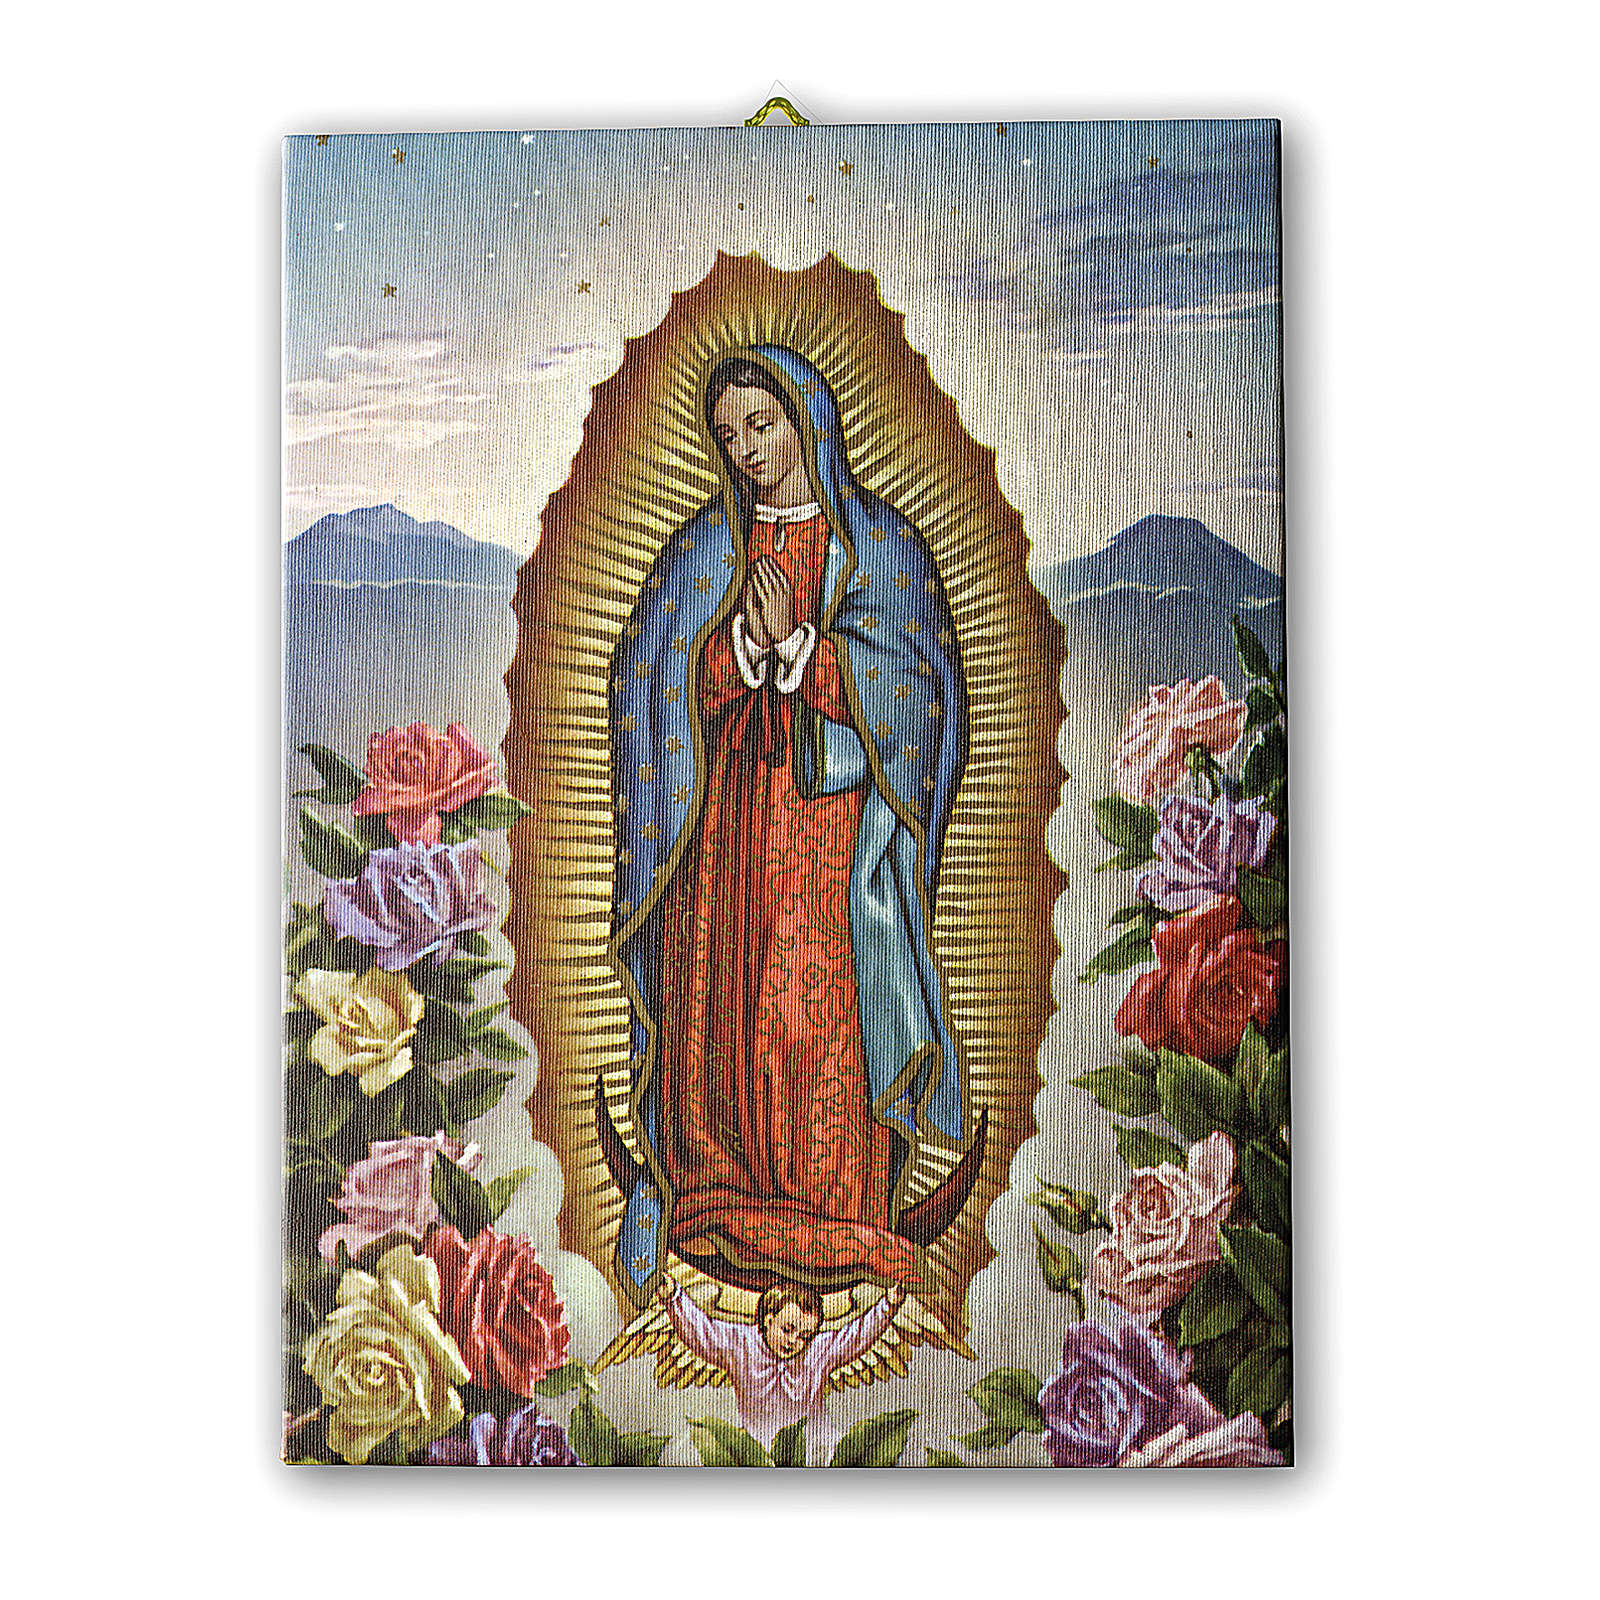 Painting on canvas Our Lady of Guadalupe 40x30 cm 3